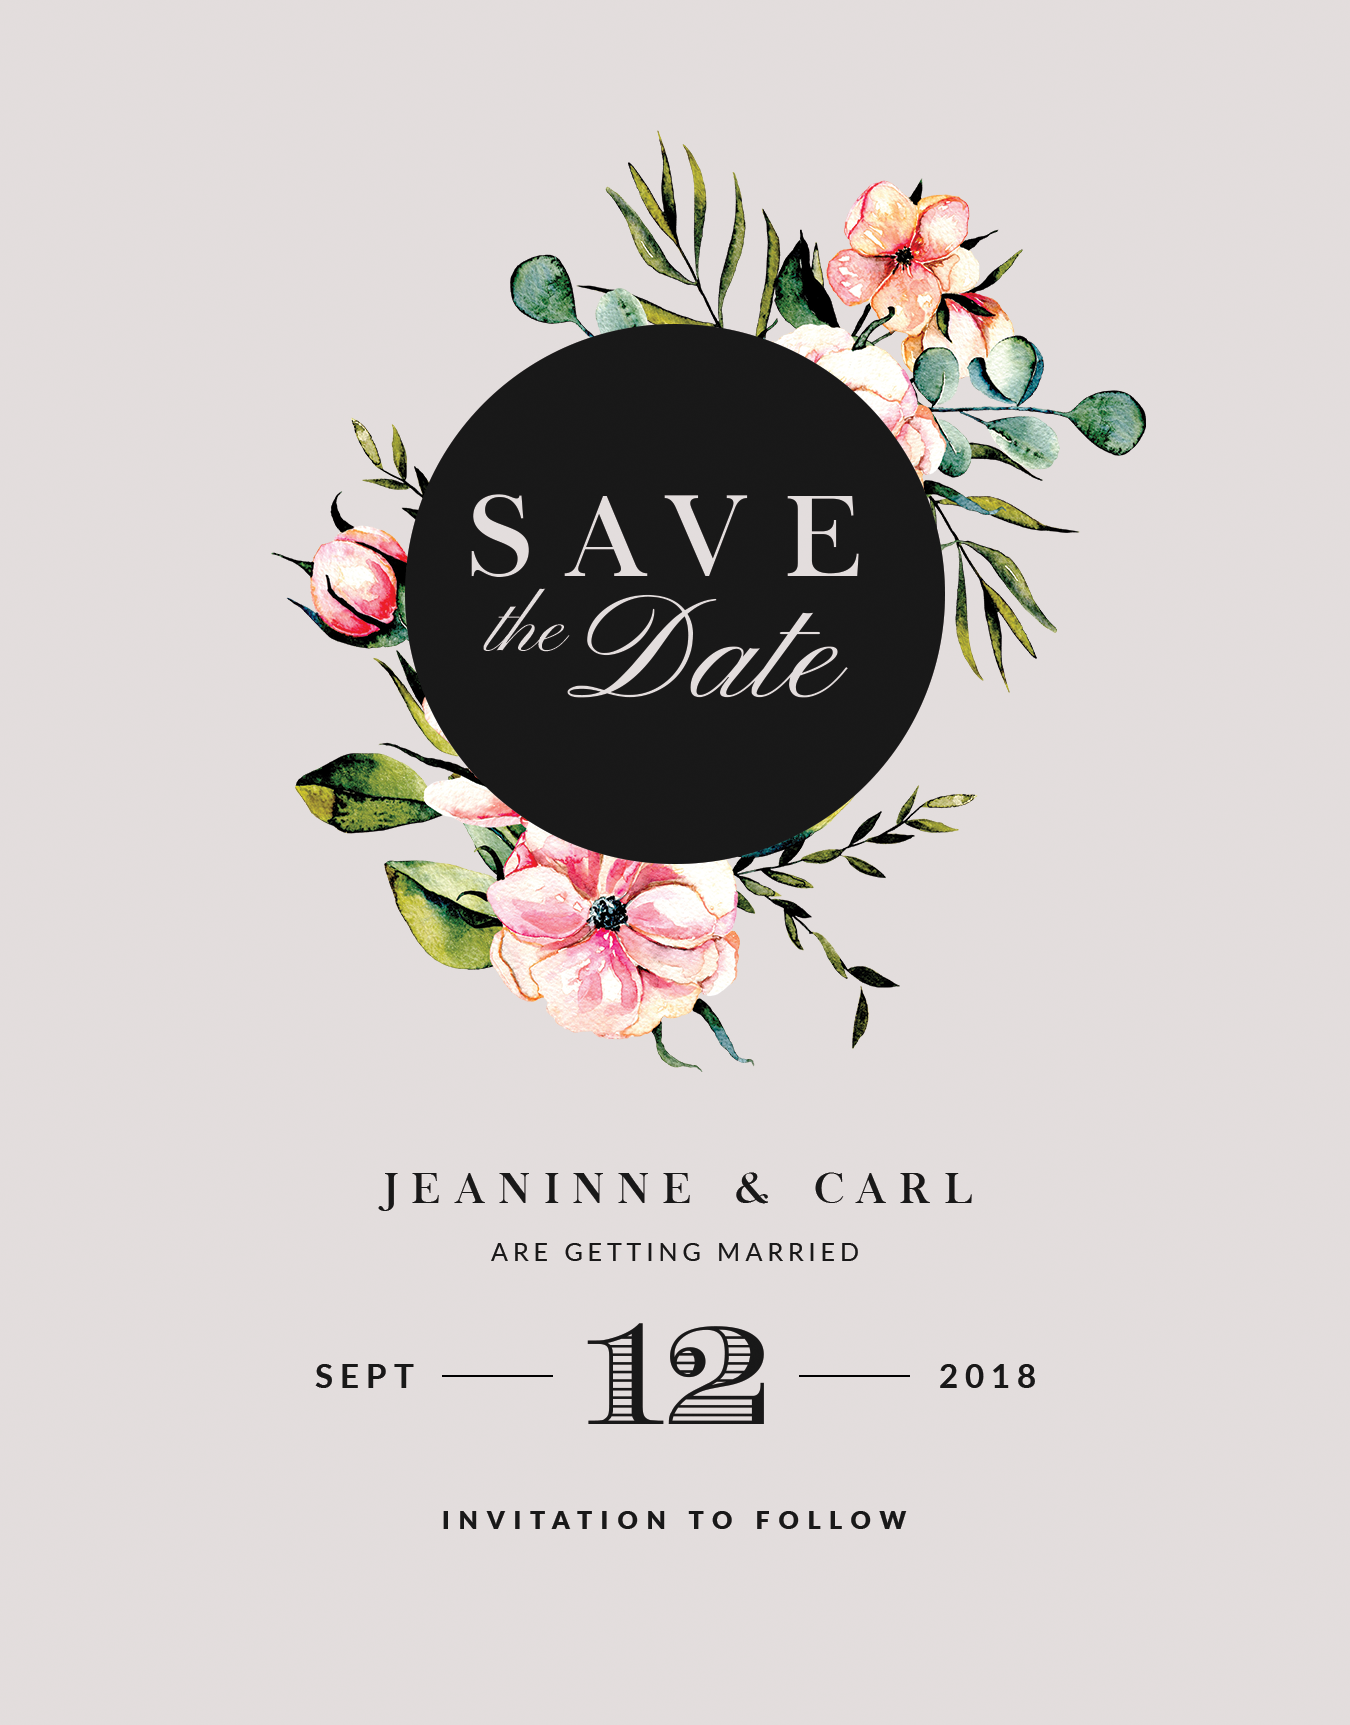 Save The Date - US A2 CARD SIZE - COLOR 3_RGB.png